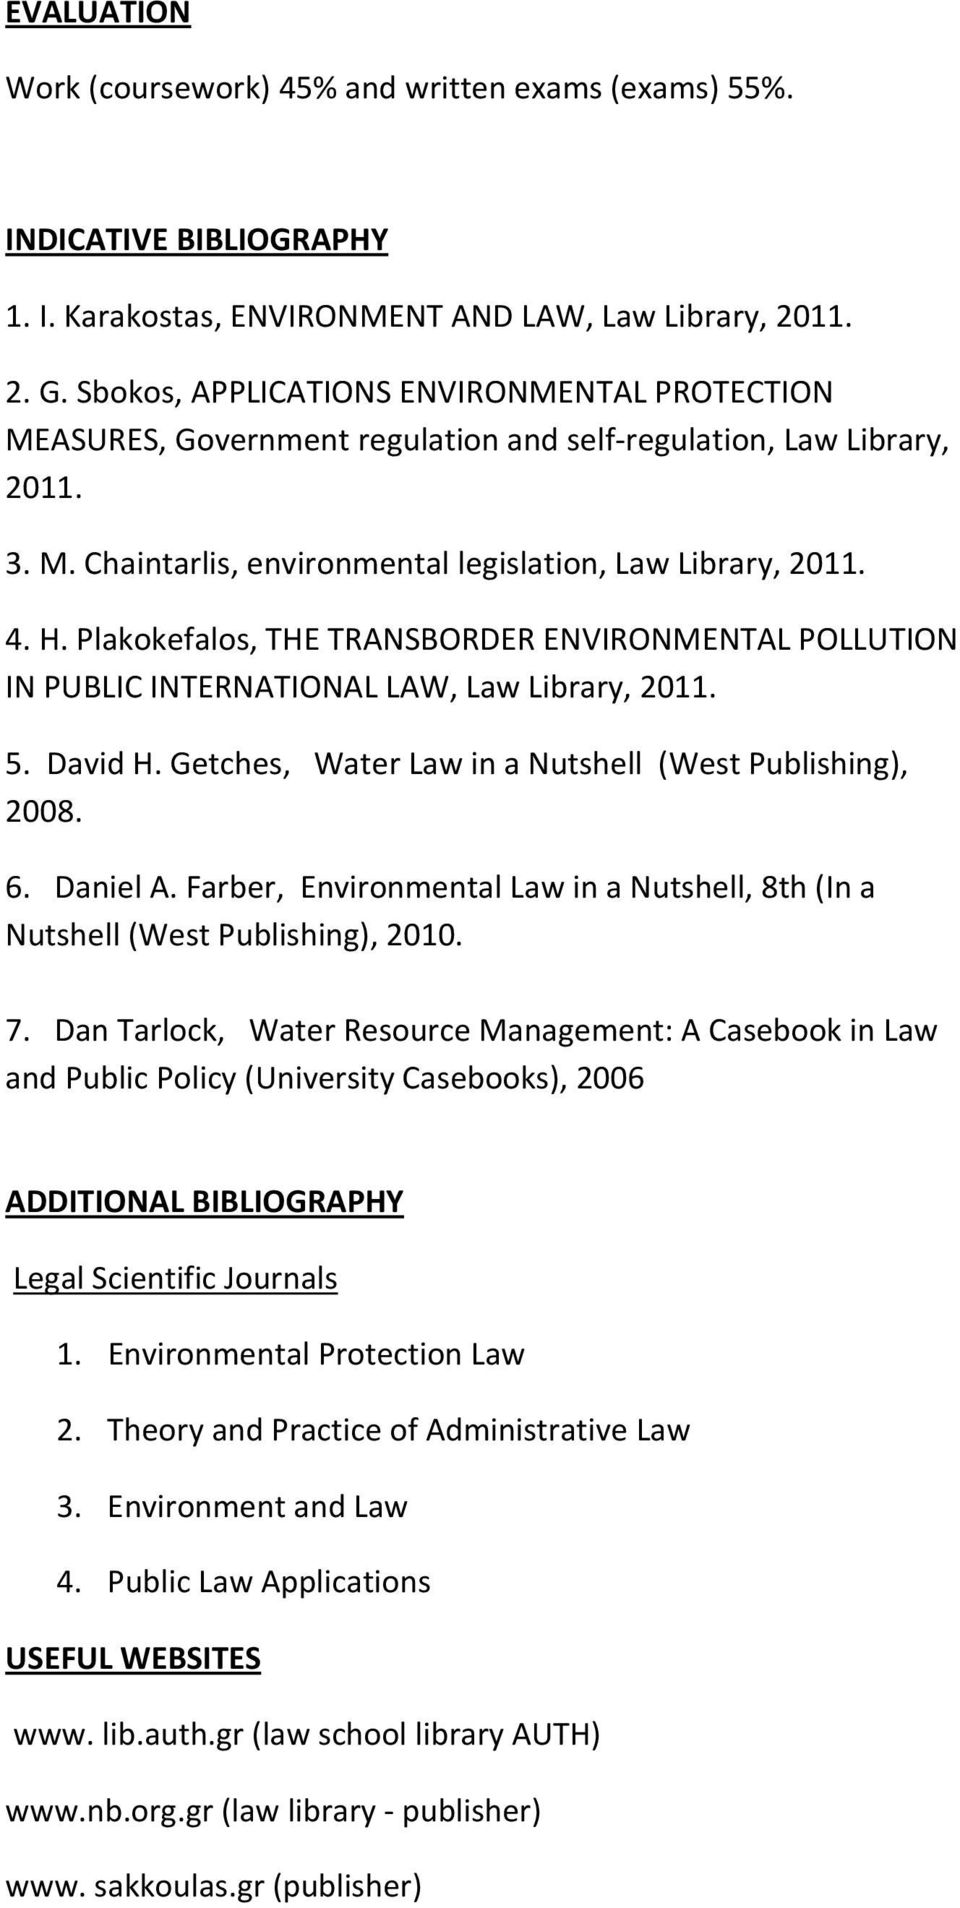 Plakokefalos, THE TRANSBORDER ENVIRONMENTAL POLLUTION IN PUBLIC INTERNATIONAL LAW, Law Library, 2011. 5. David H. Getches, Water Law in a Nutshell (West Publishing), 2008. 6. Daniel A.